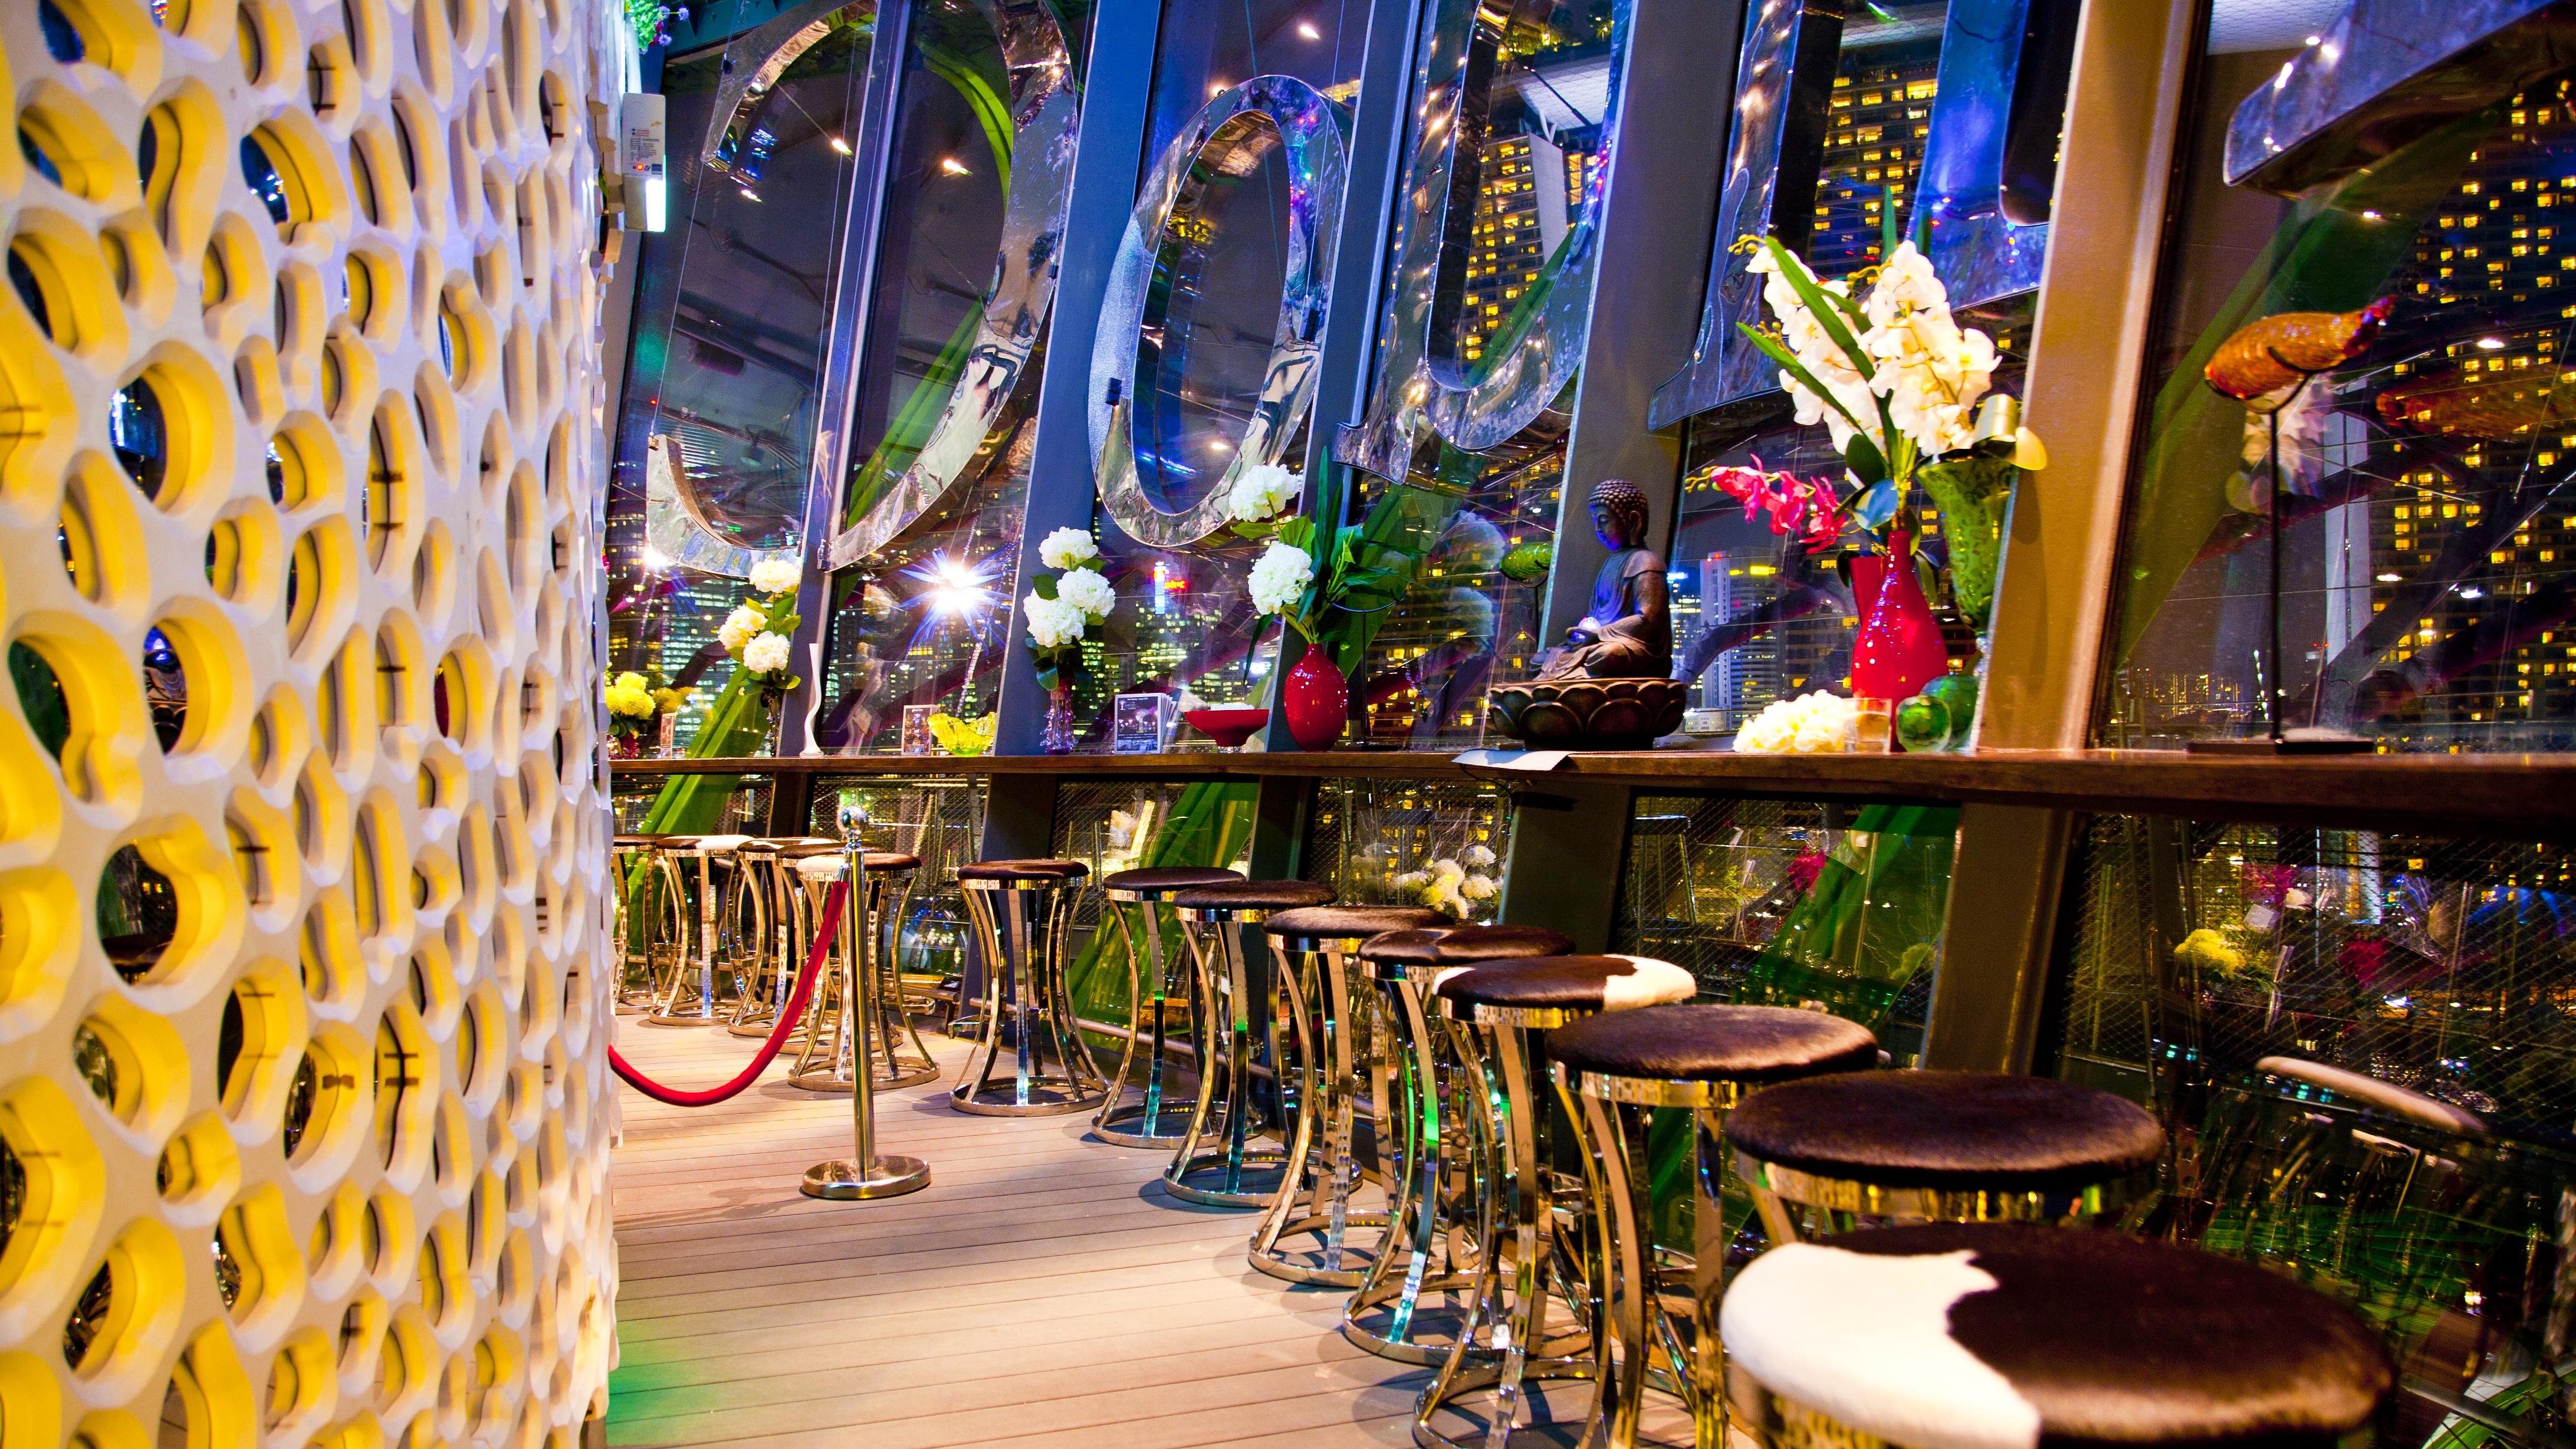 SuperTree-By-IndoChine-Bar-Restaurant-Marina-Bay-Singapore-Party-Corporate-Wedding-Venuerific-4